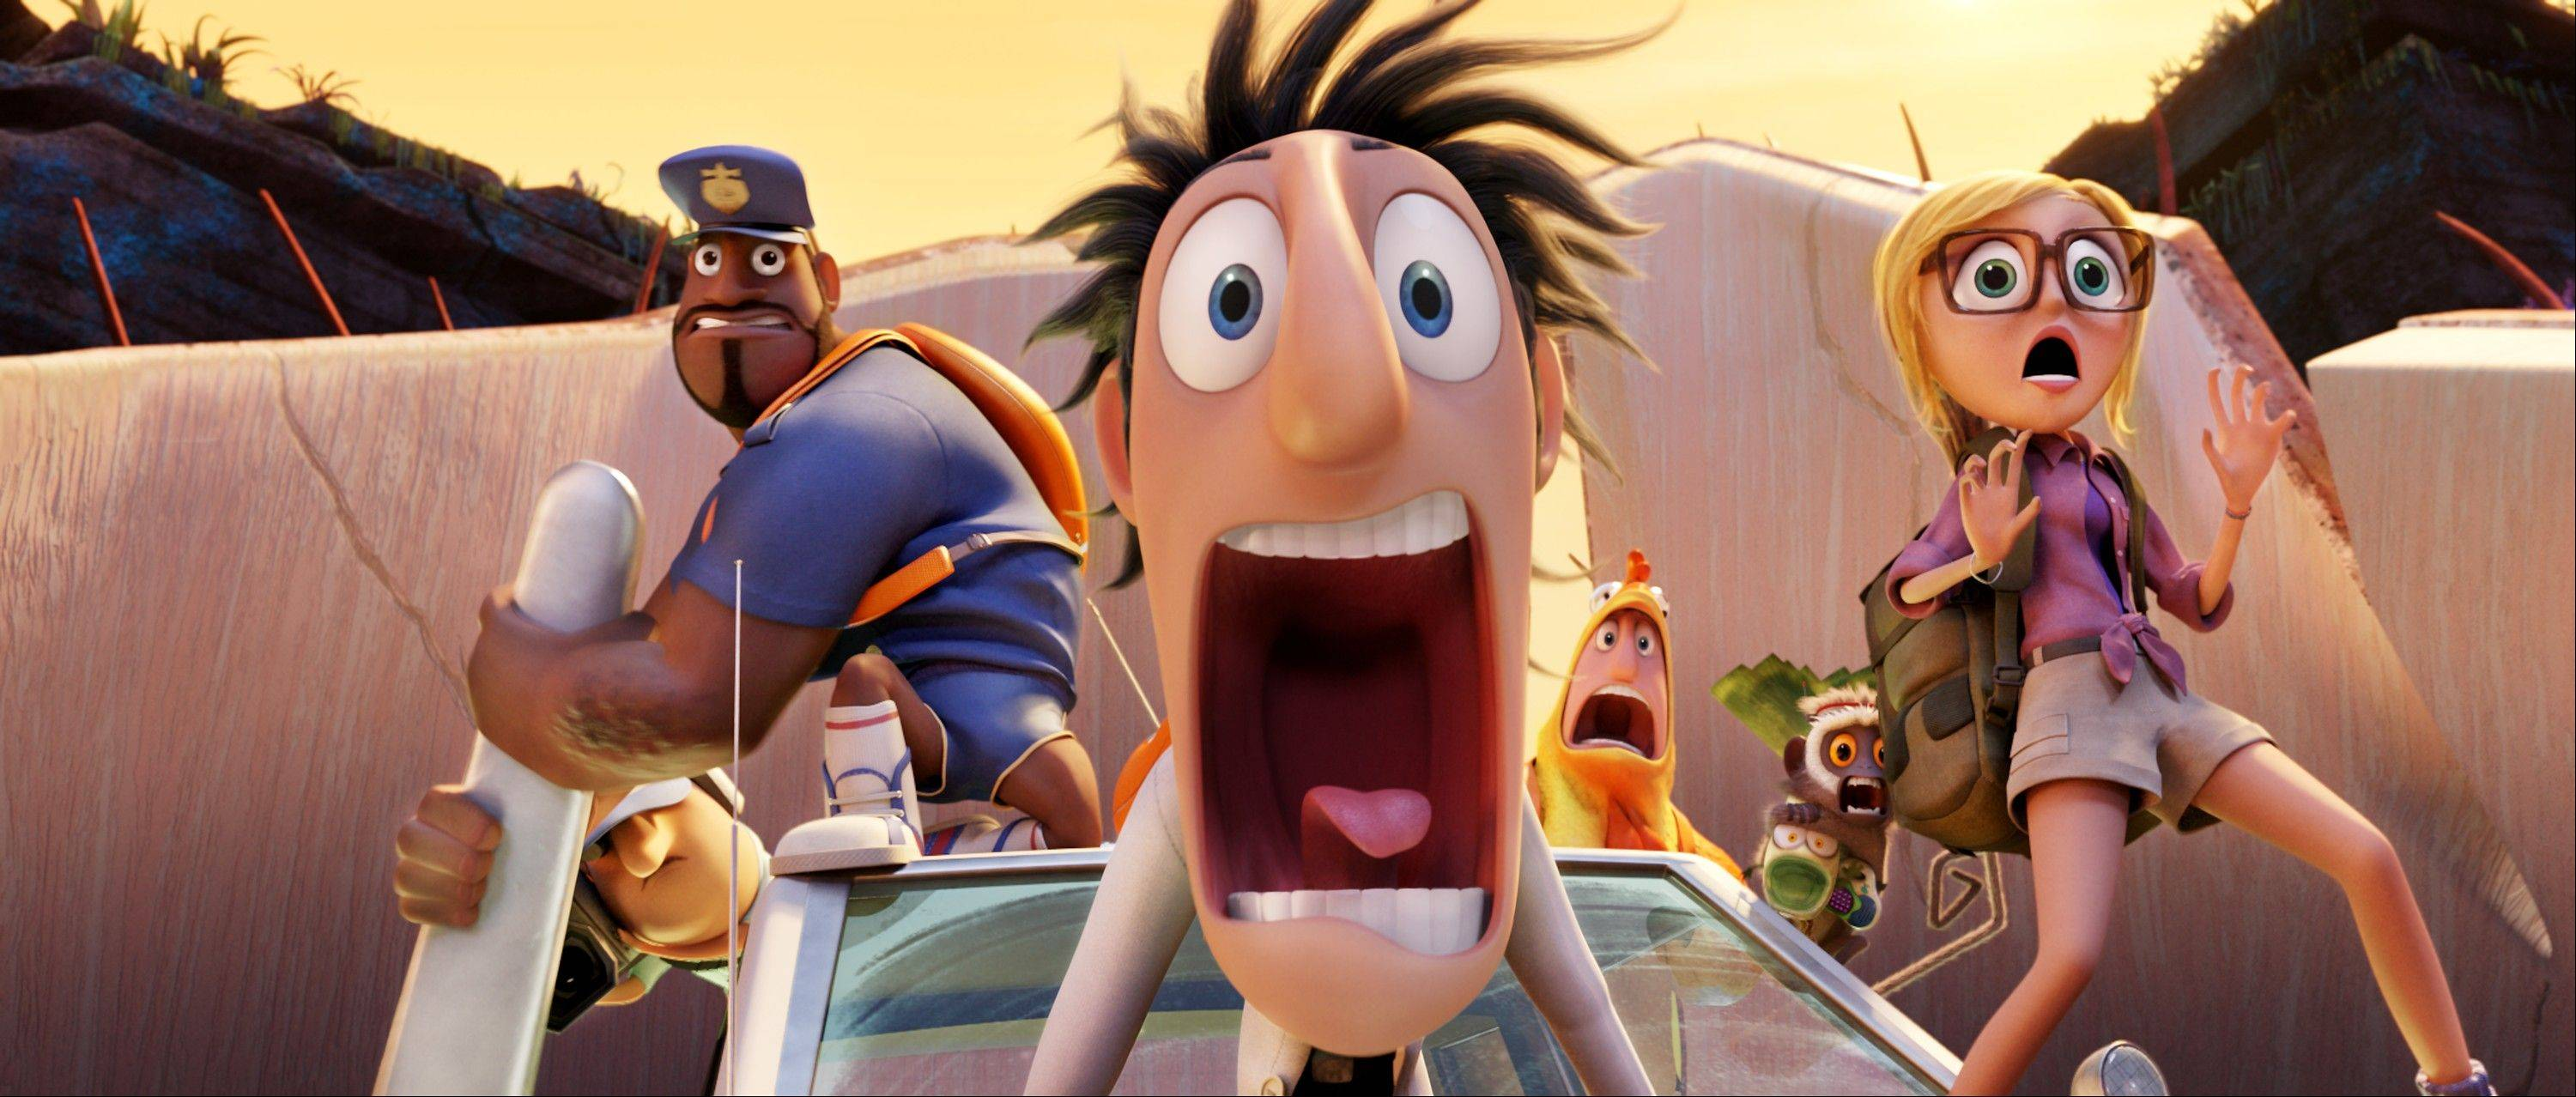 Flint (Bill Hader) and the gang reunite for �Cloudy with a Chance of Meatballs 2.�